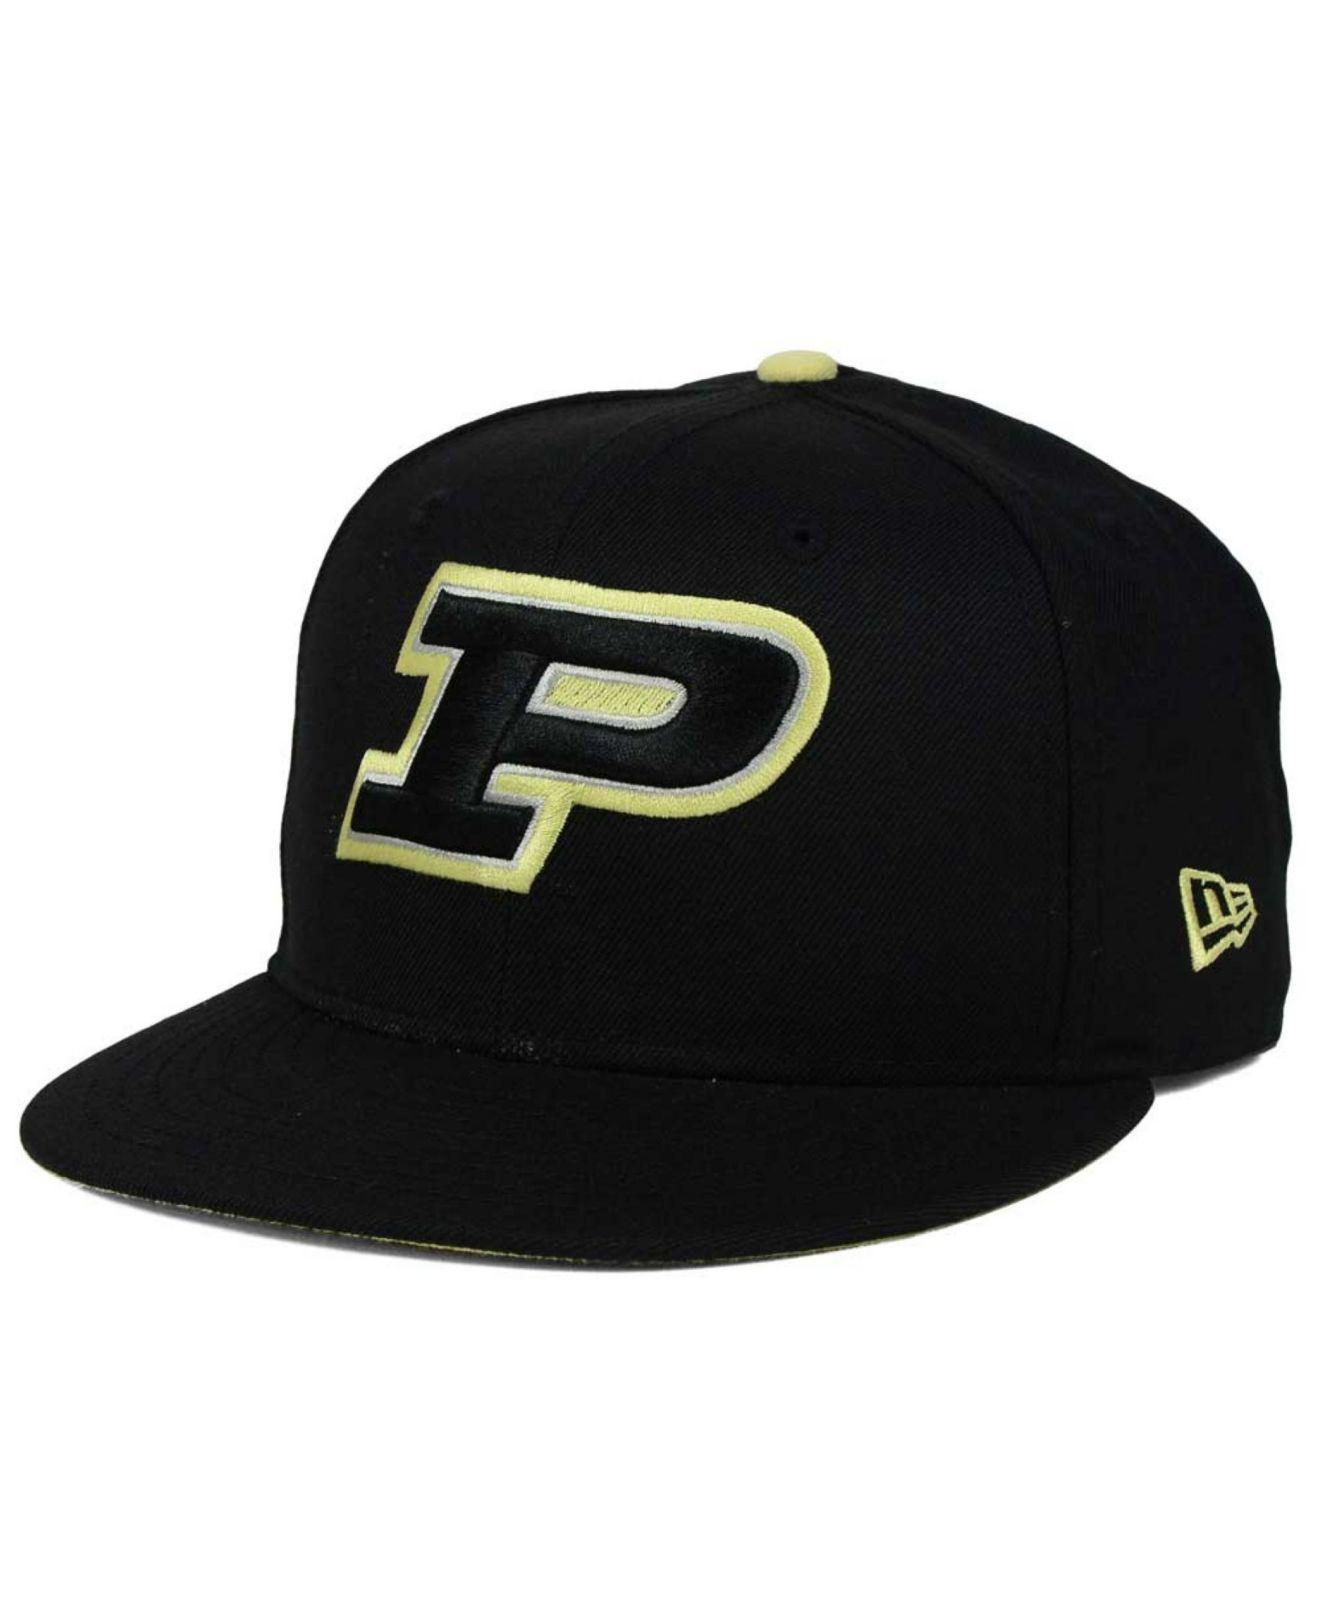 timeless design 1373f e1cdb KTZ - Black Purdue Boilermakers Core 9fifty Snapback Cap for Men - Lyst. View  fullscreen